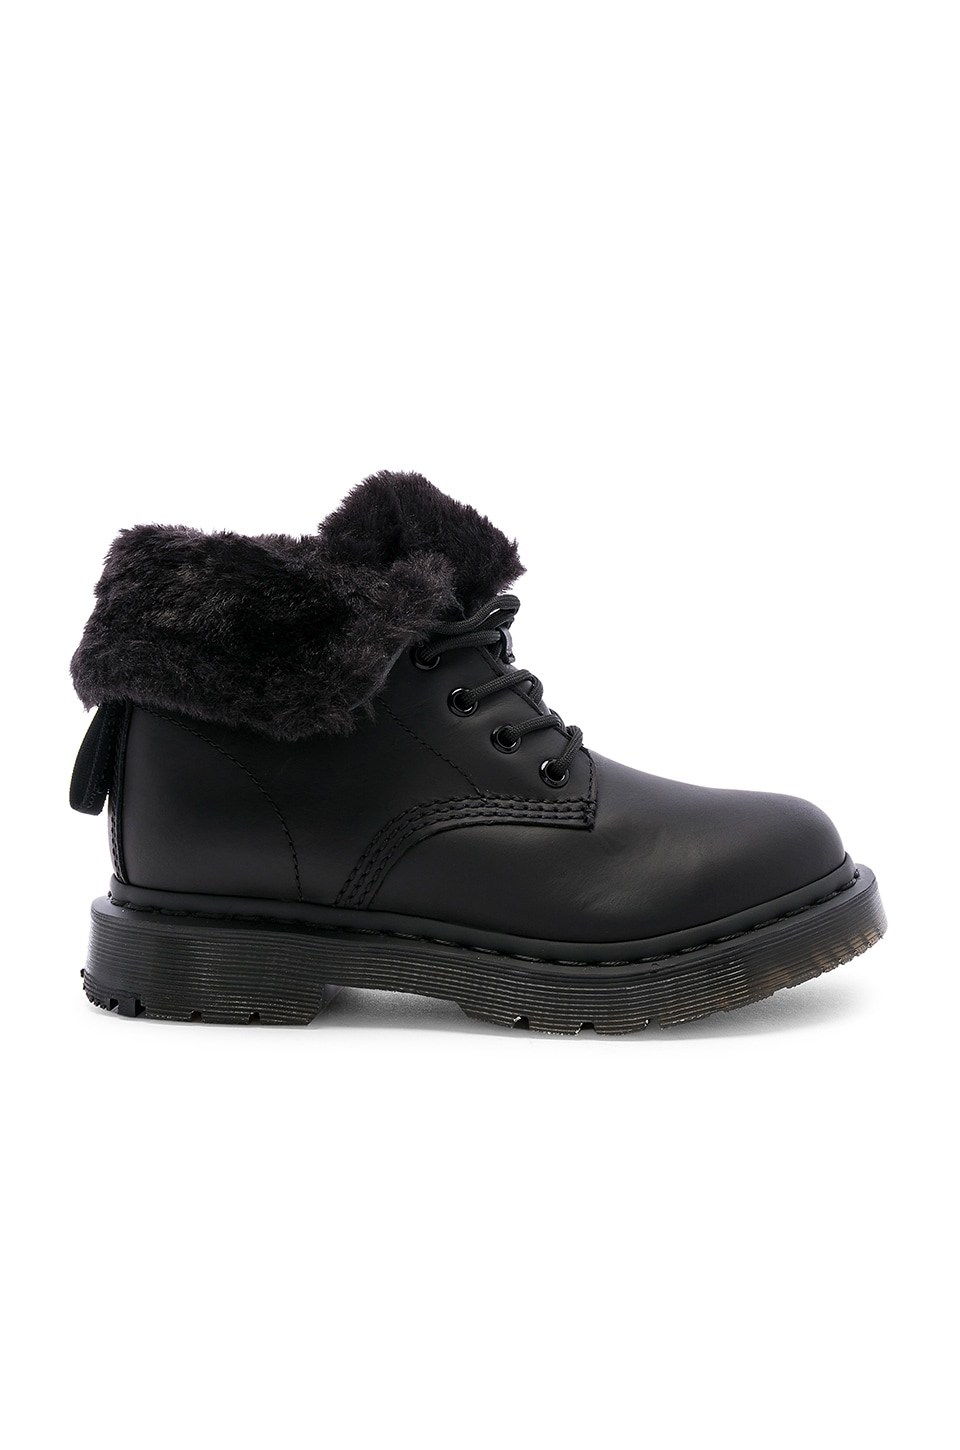 Dr. Martens 1460 Kolbert Snowplow Boot in Black